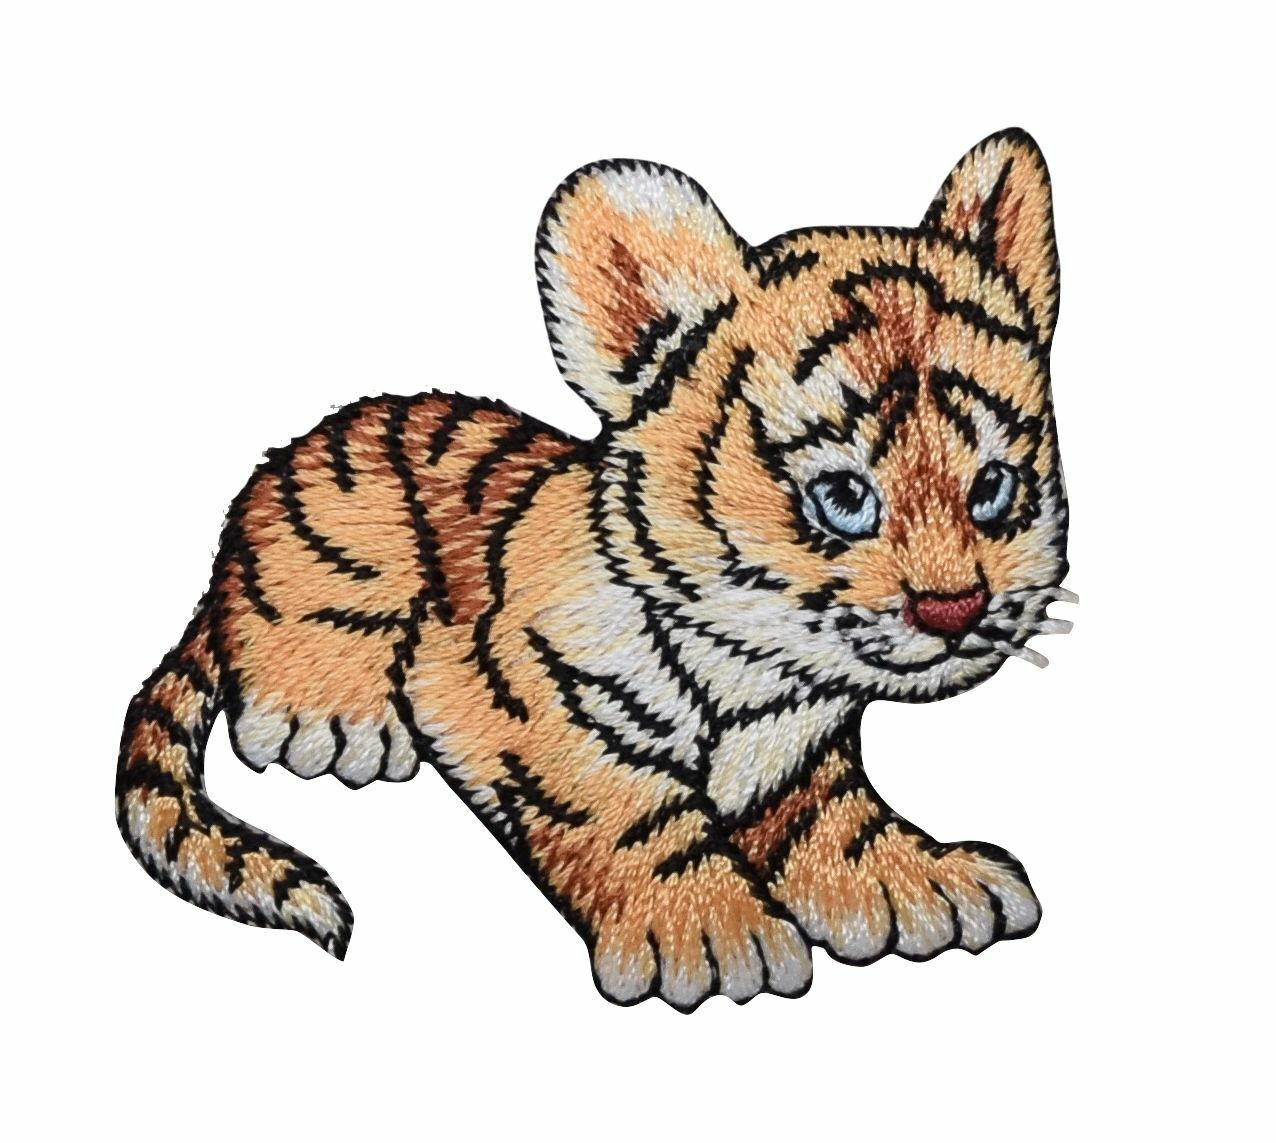 Embroidered Iron On Applique Patch Tiger Wild Animal Zoo Animal